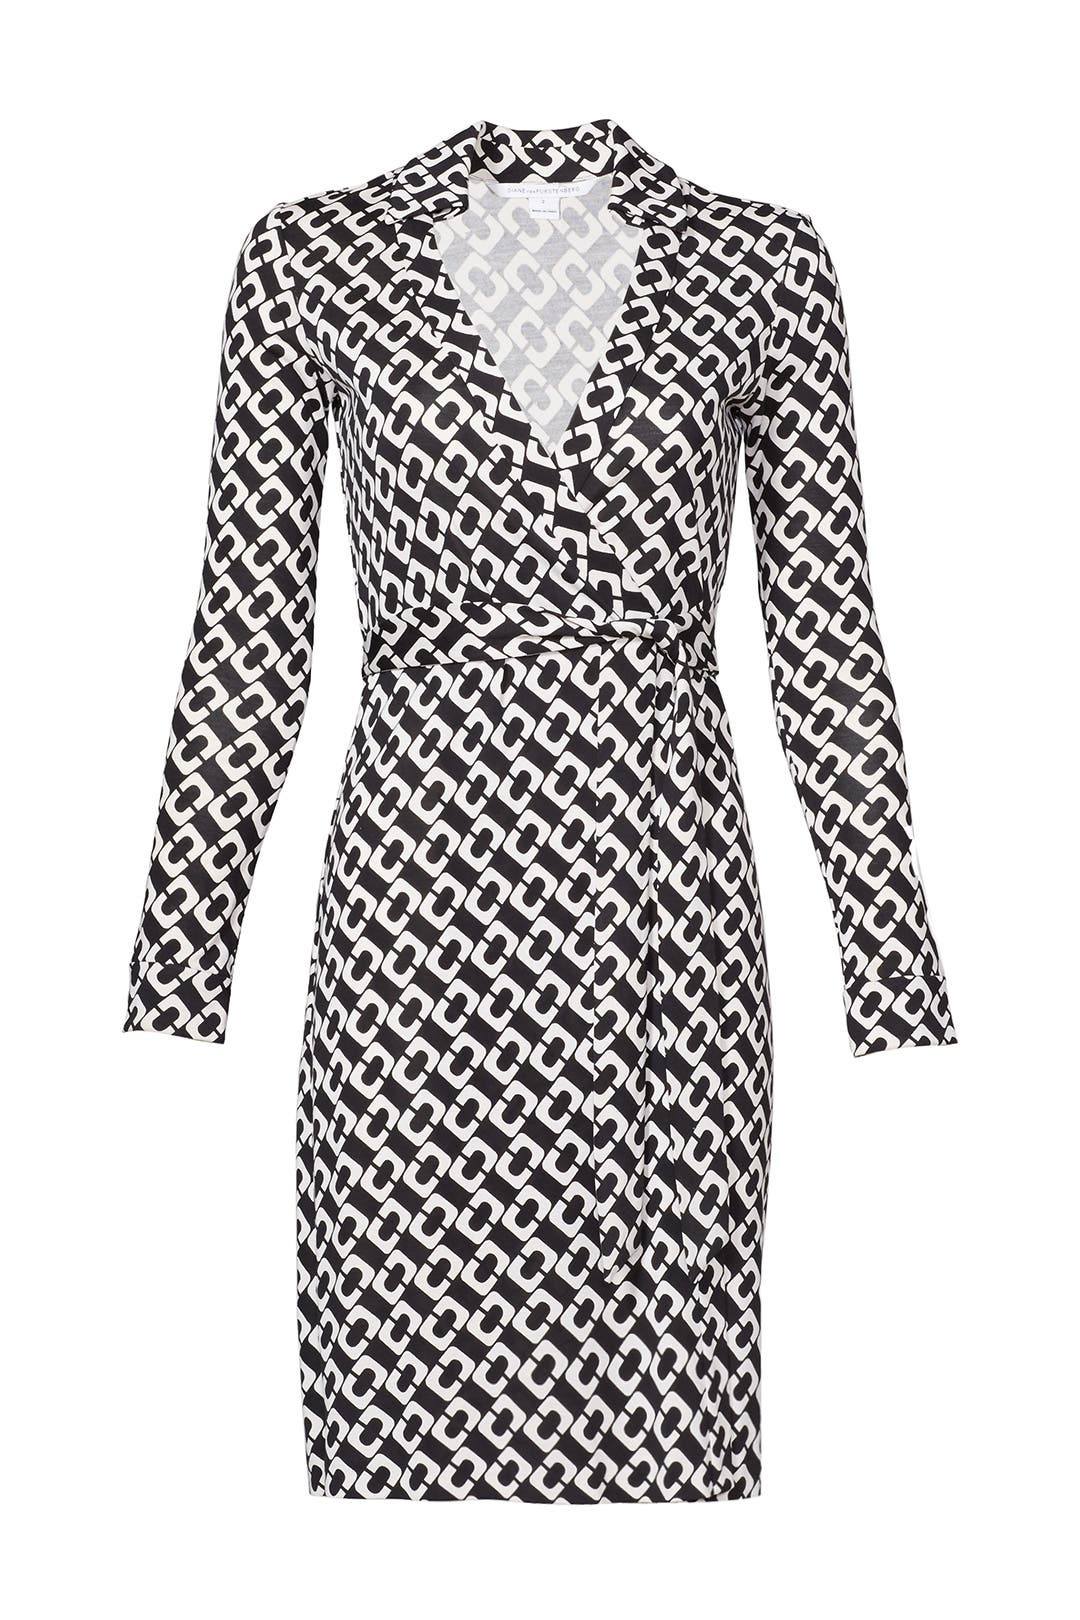 Contrast Jeanne Two Dress by Diane von Furstenberg for $80 | Rent ...